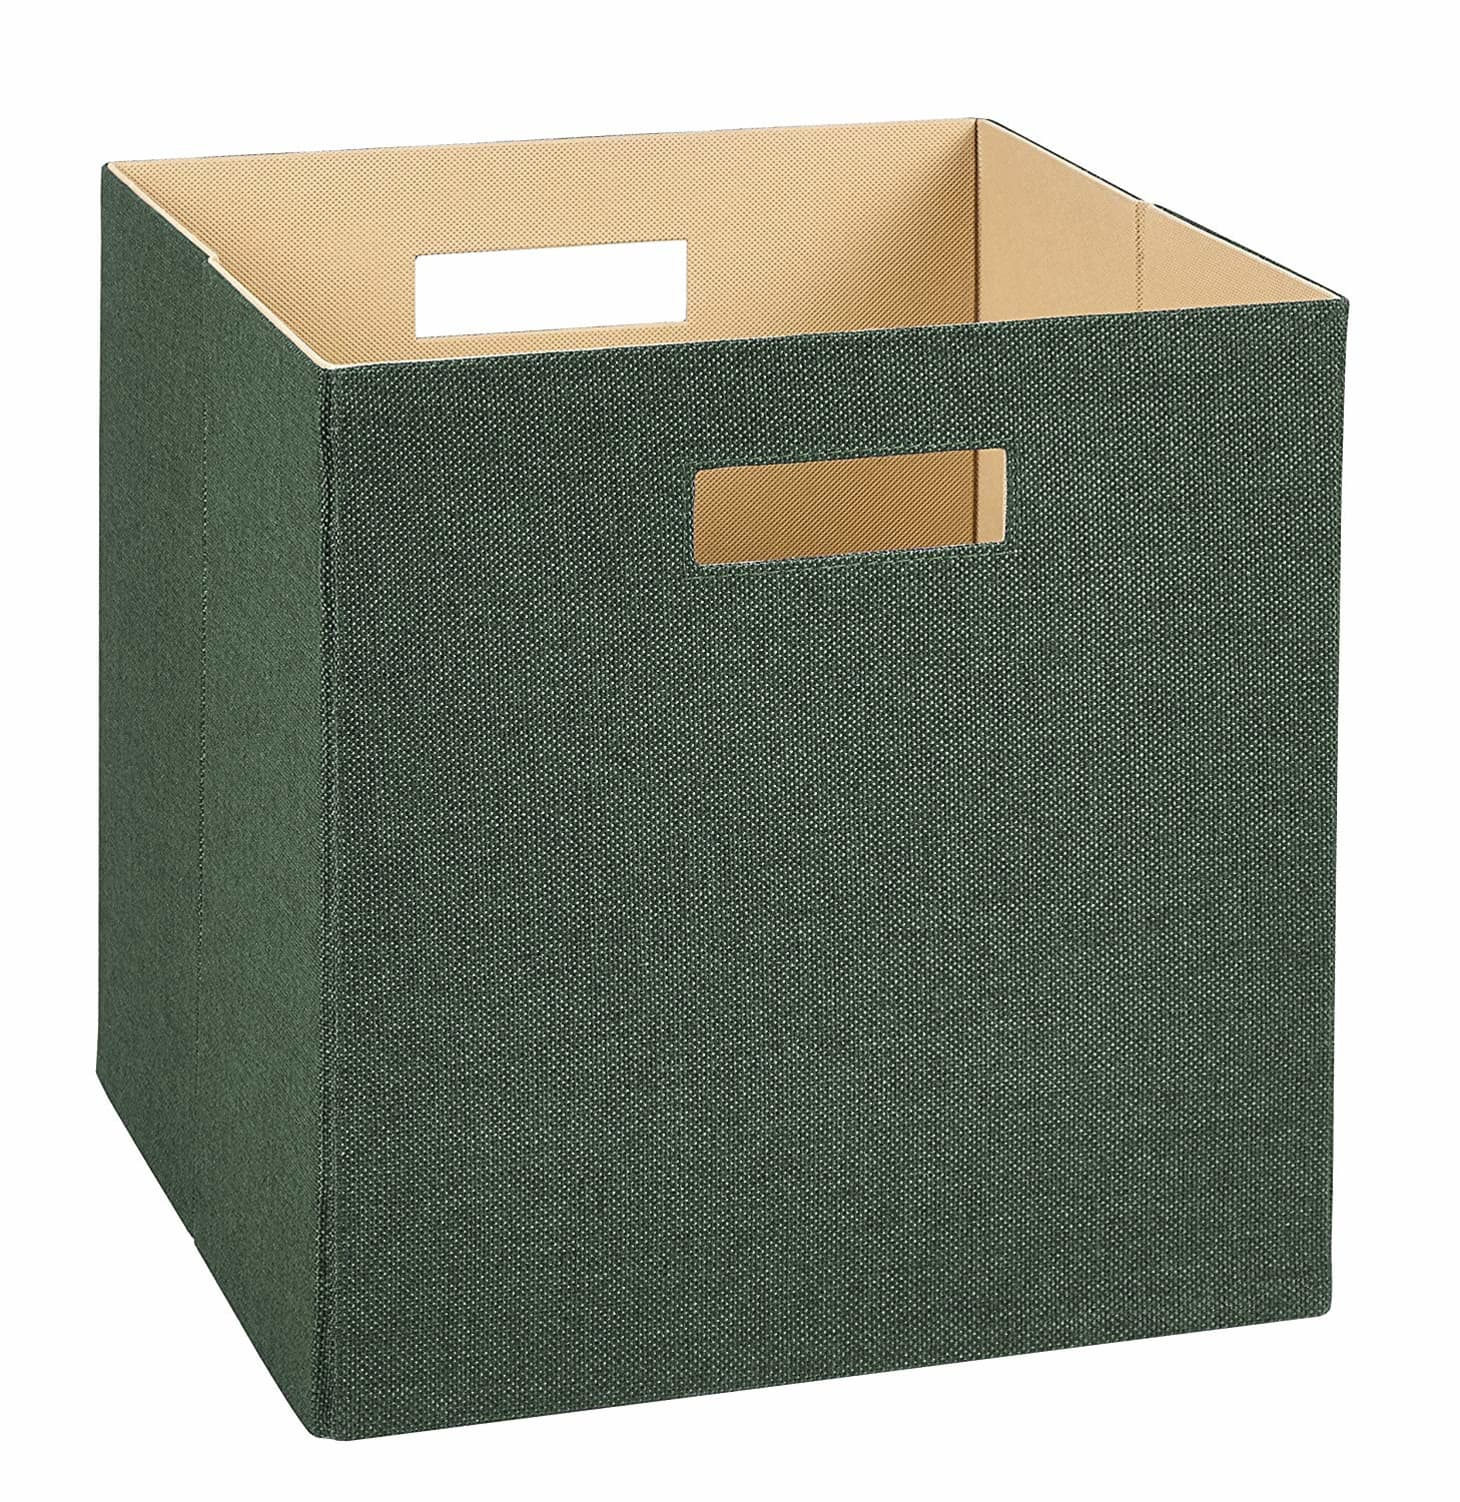 Where To Buy Storage Cubes For An Ikea Kallax Bookshelf Apartment